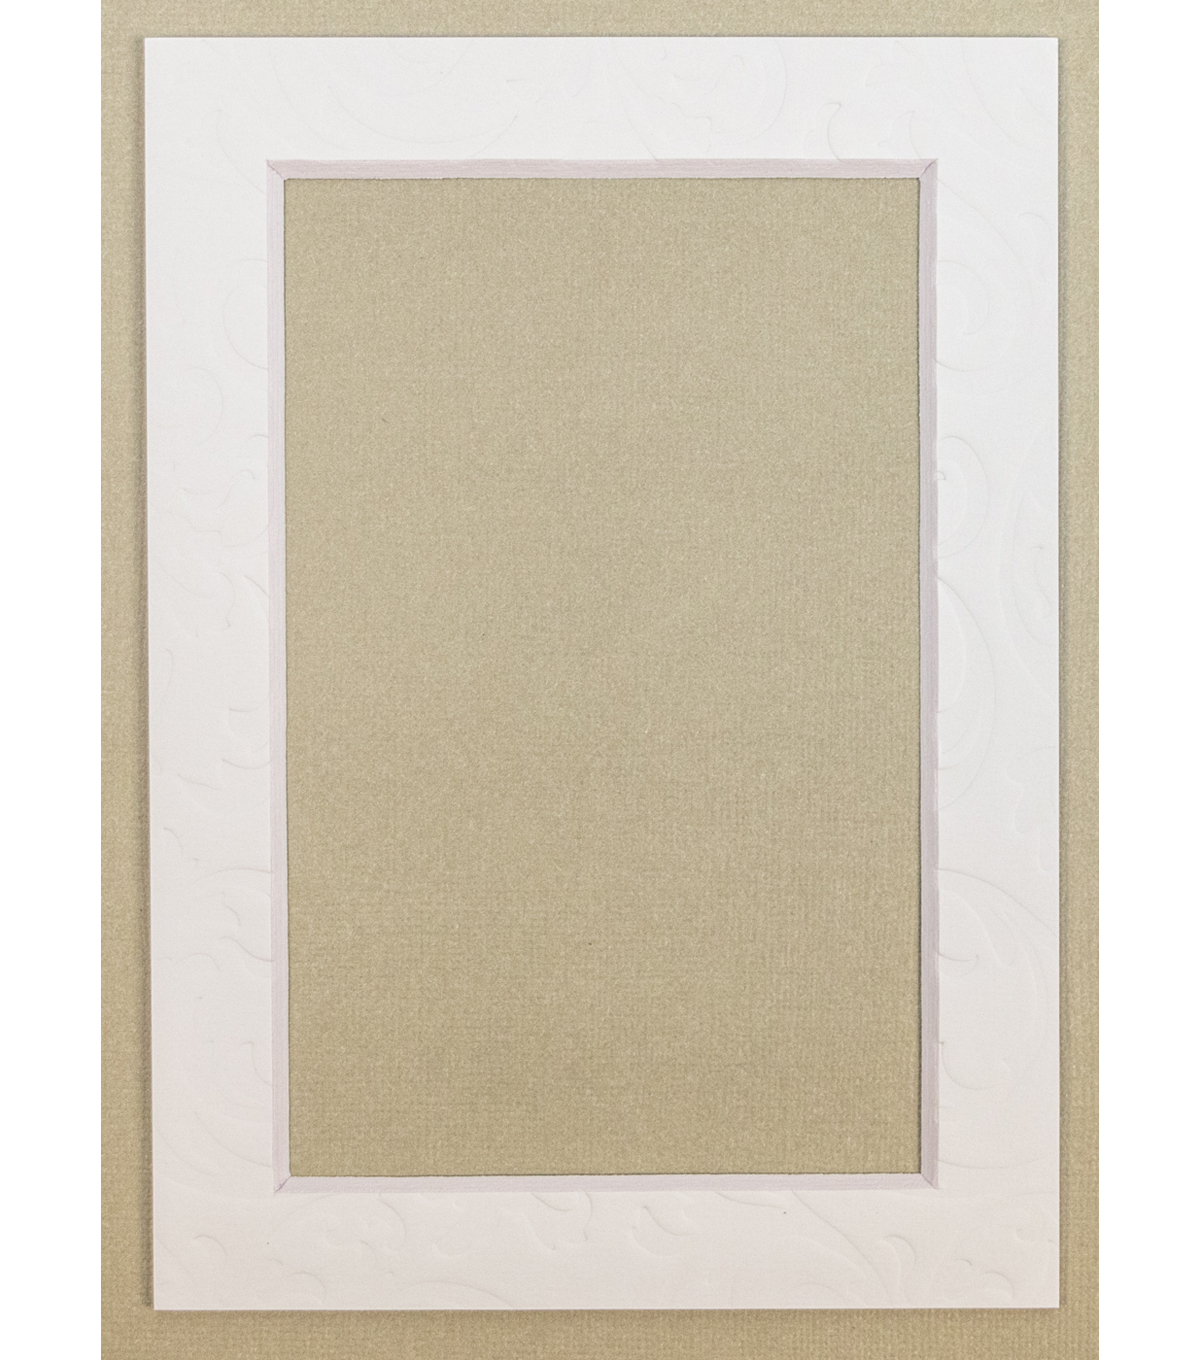 Framing Mats 5X7-White With Raised Design